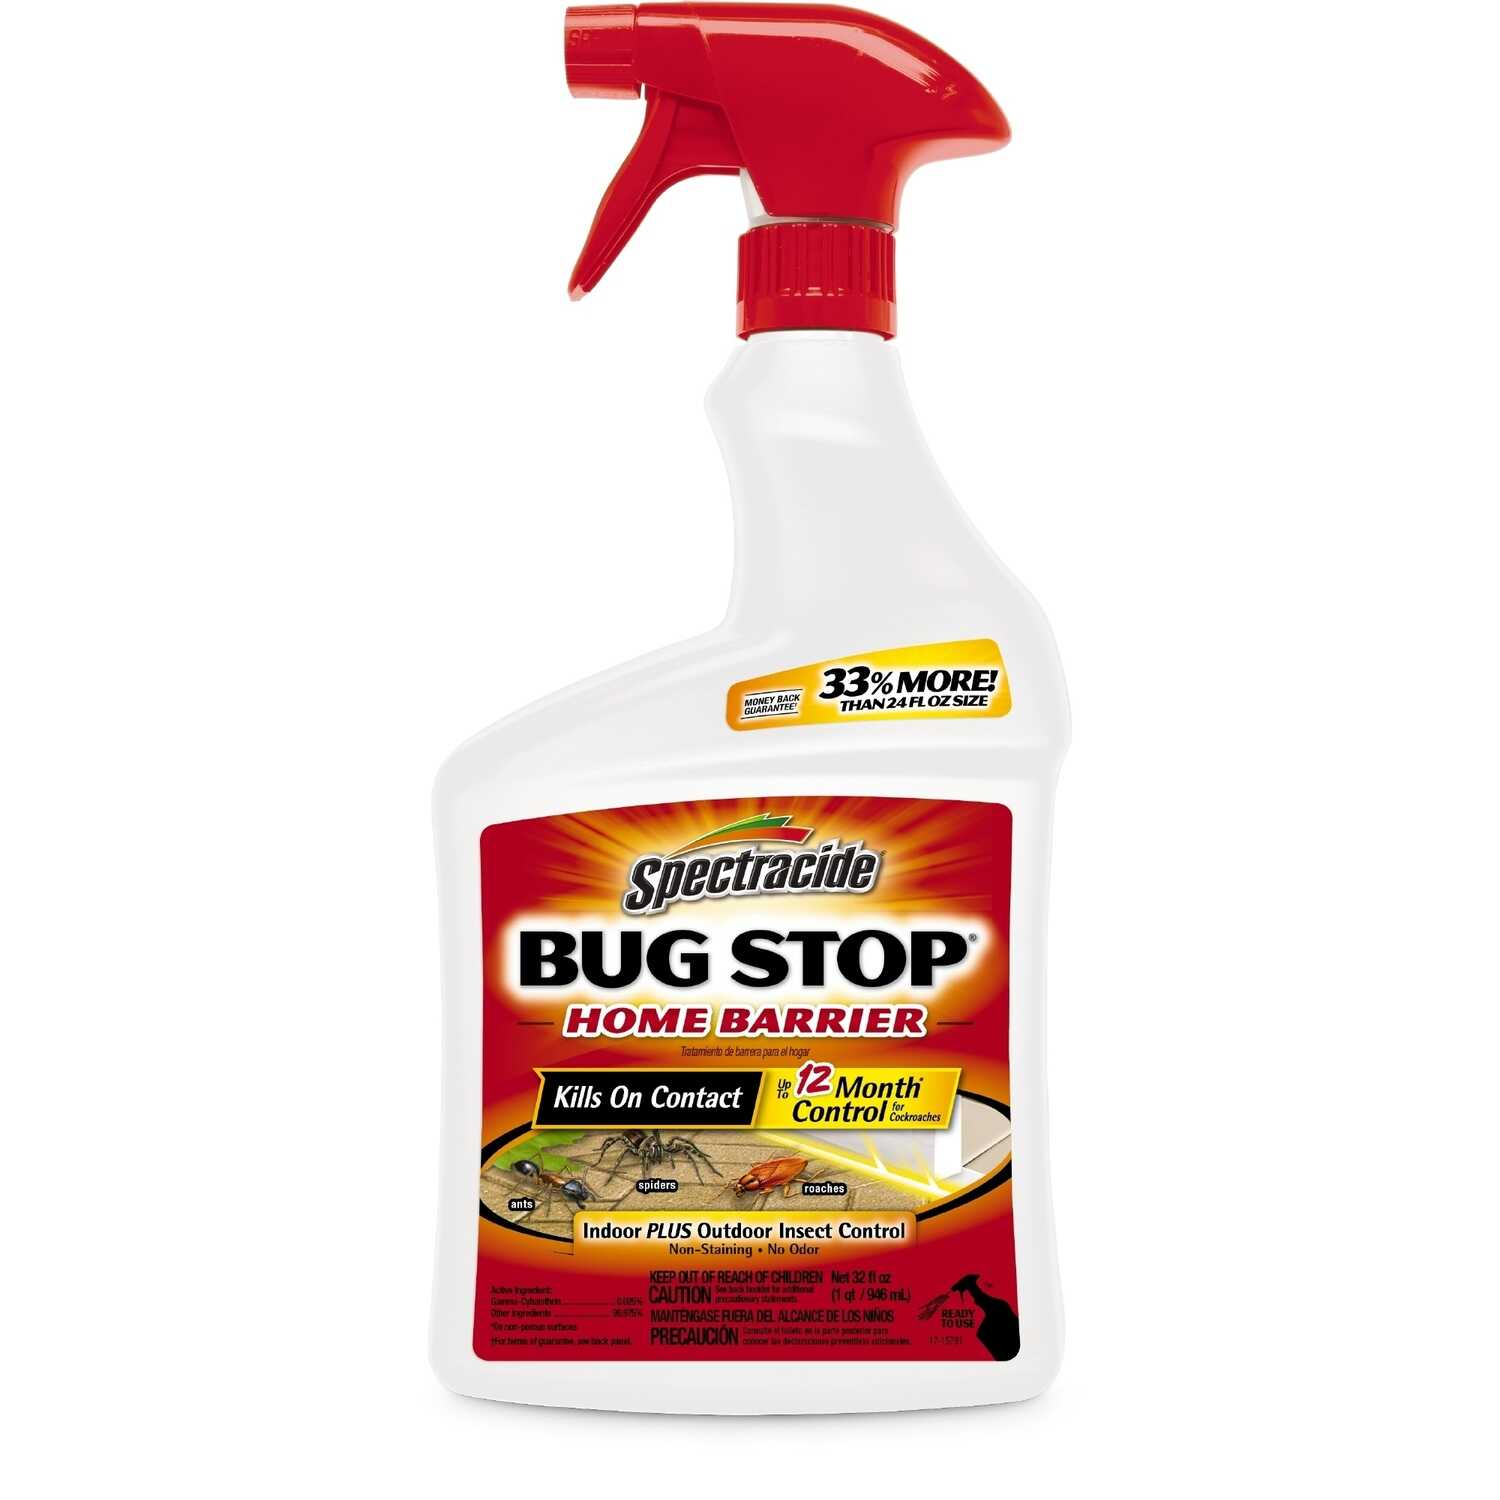 Spectracide  Bug Stop Home Barrier  Insect Killer  32 oz.